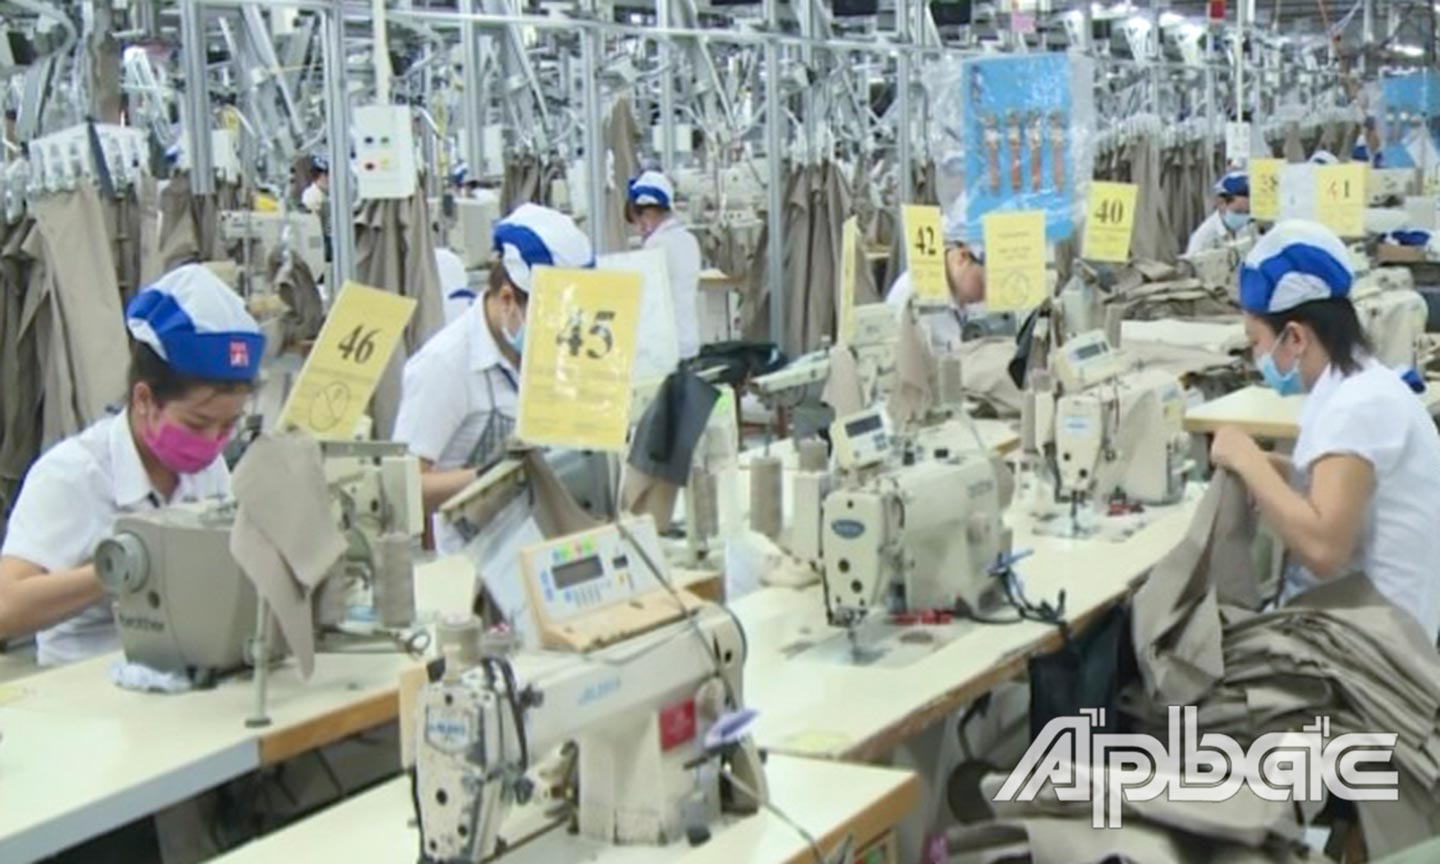 Tien Giang's industrial production index increased 6.1 percent in the first quarter